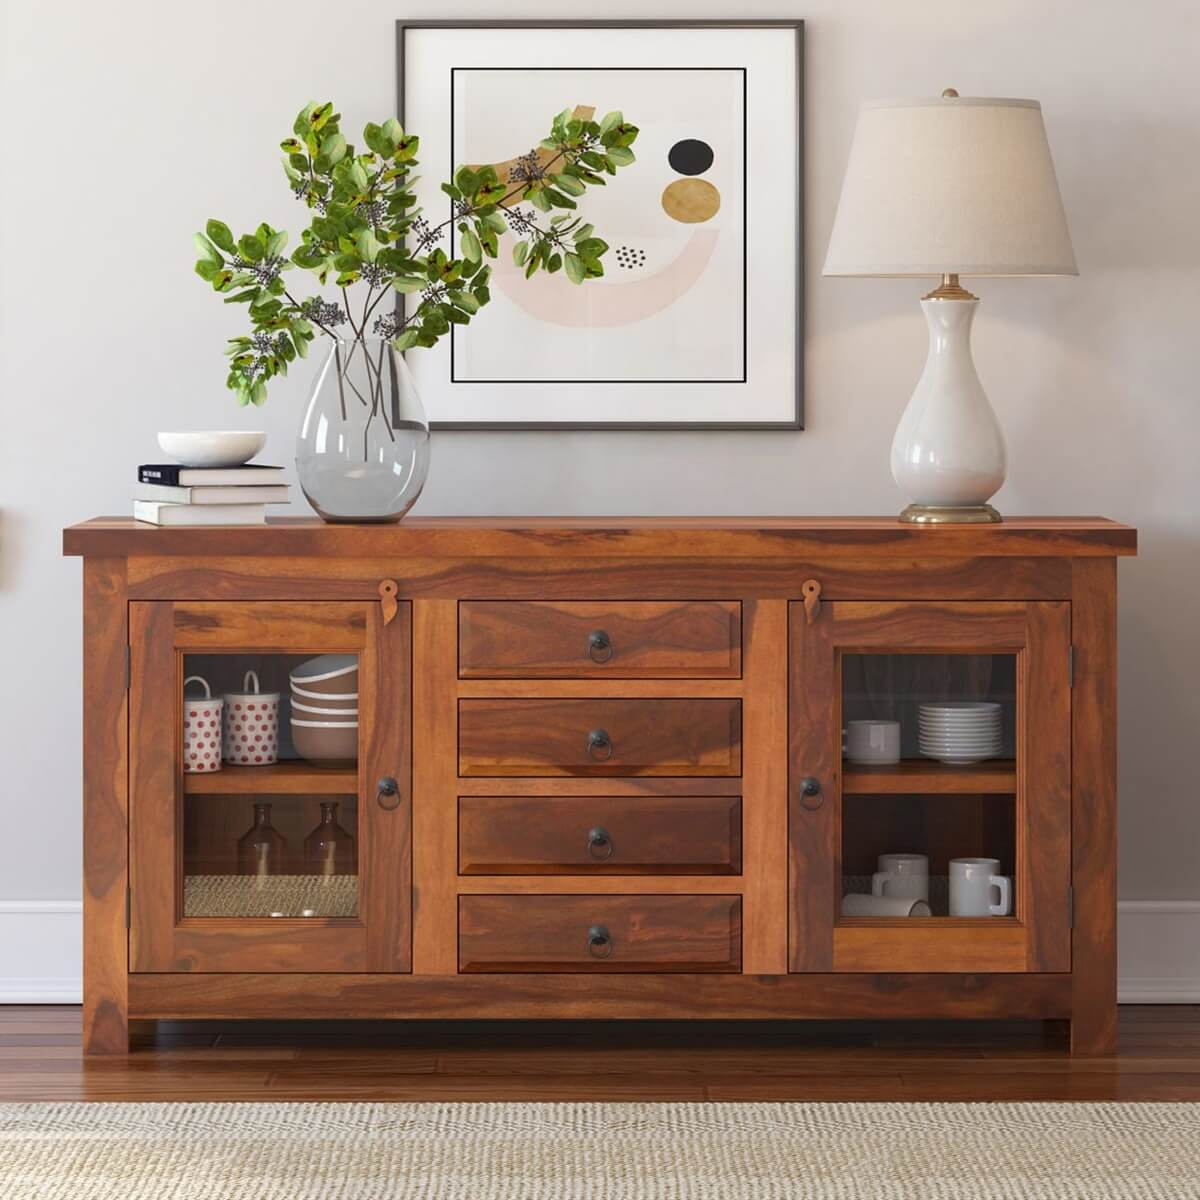 Fremont rustic solid wood glass door drawer sideboard